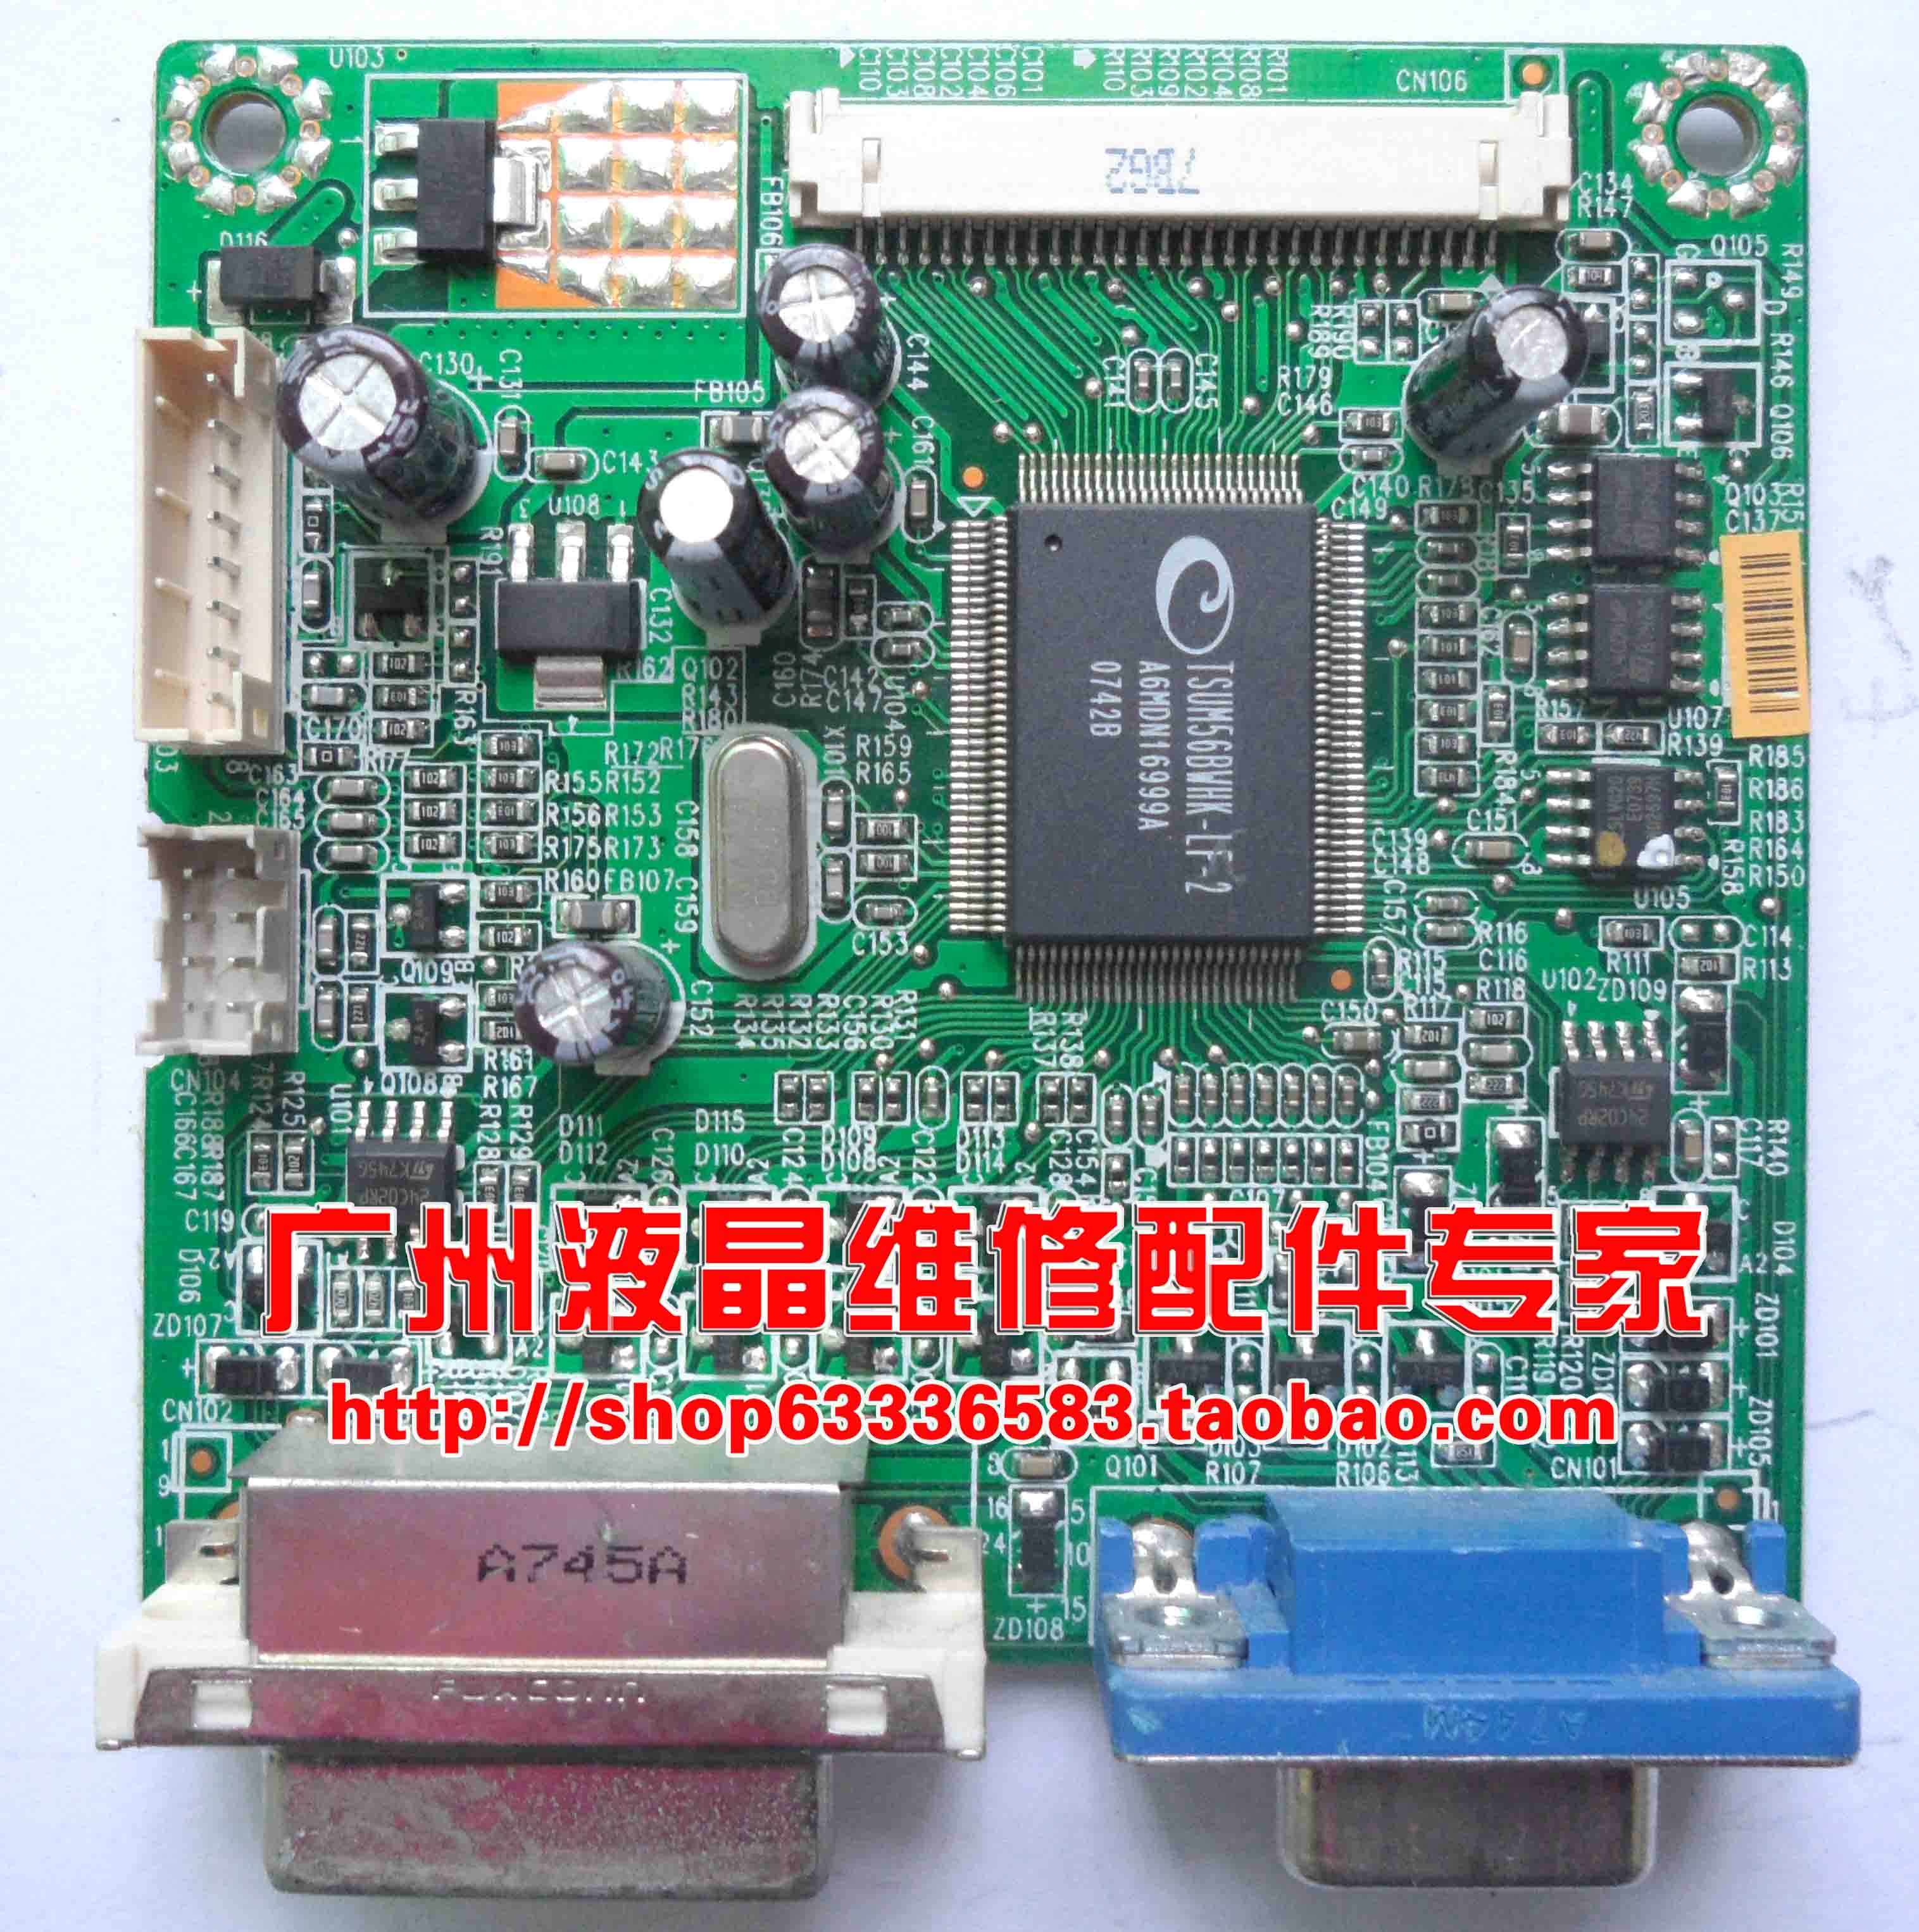 Free Shipping&gt;Original 100% Tested Working  E198WFPF S199WFP ILIF-027 490941300000R motherboard driver board<br>